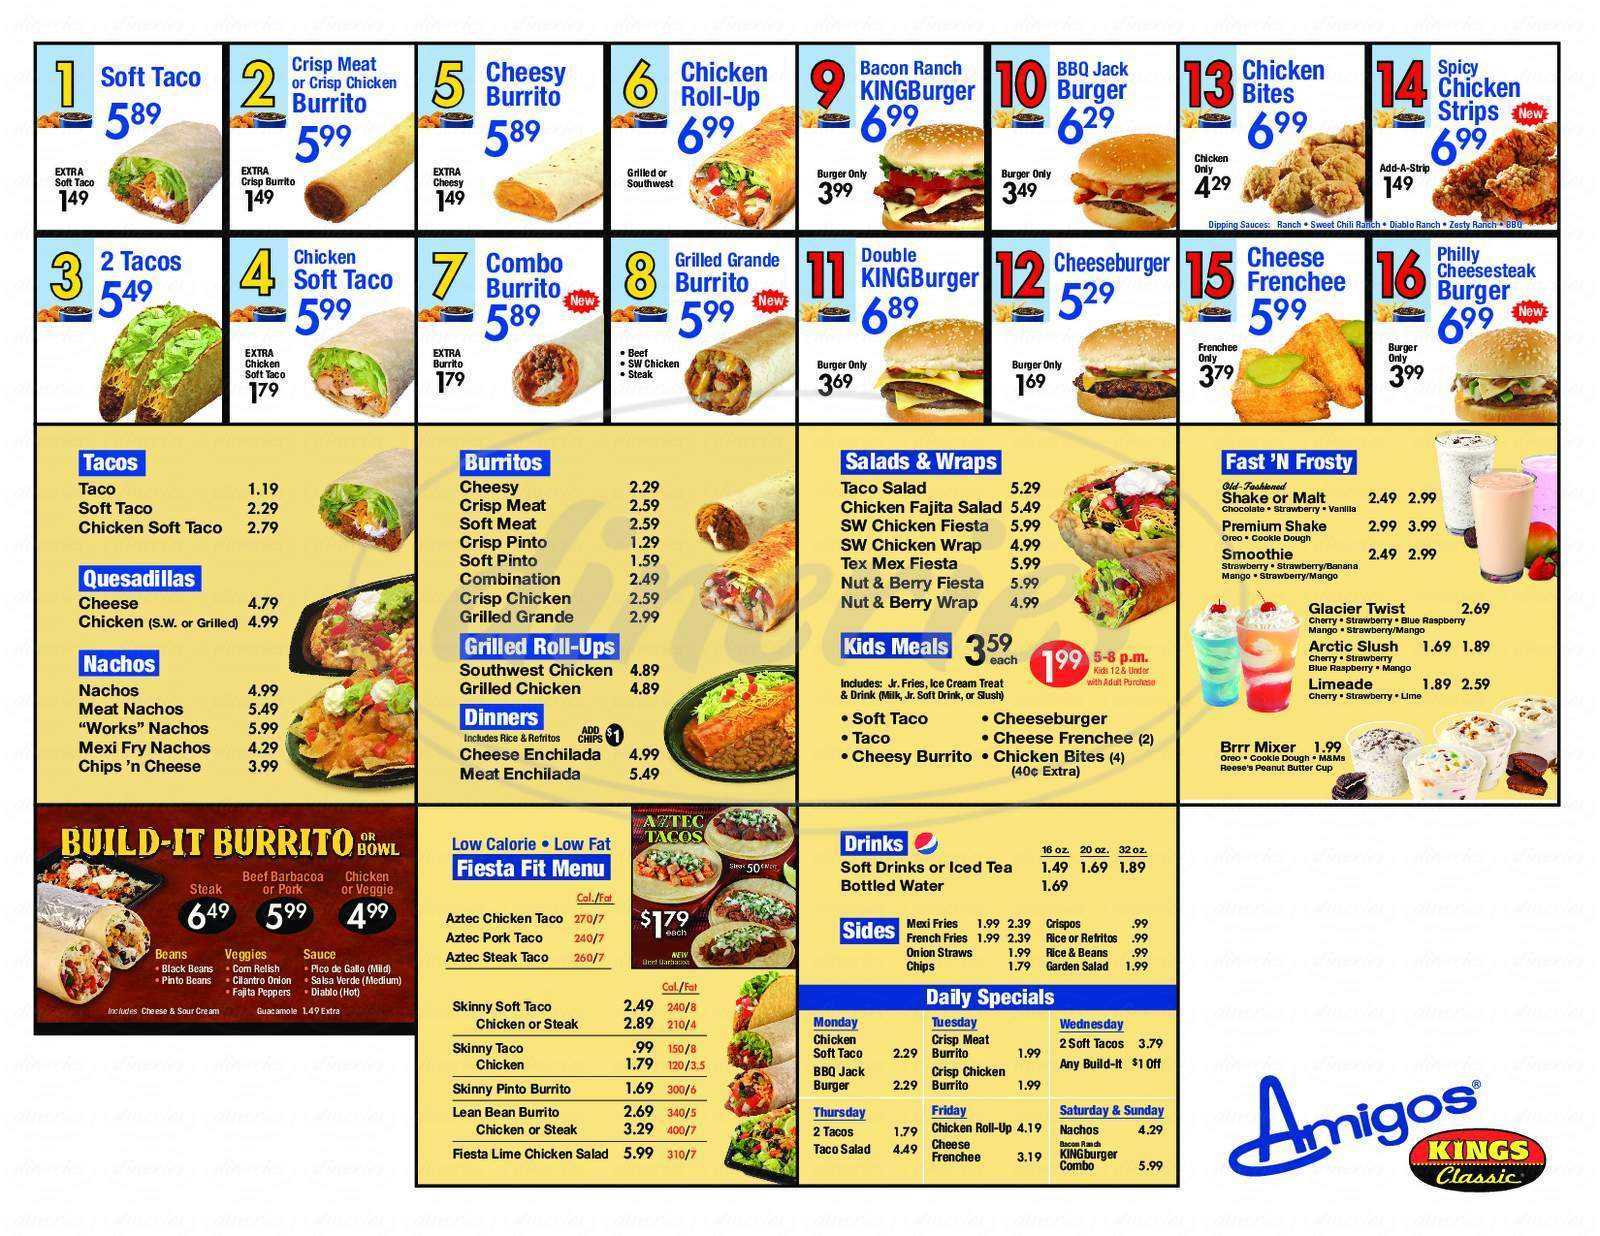 menu for Amigos/Kings Classic